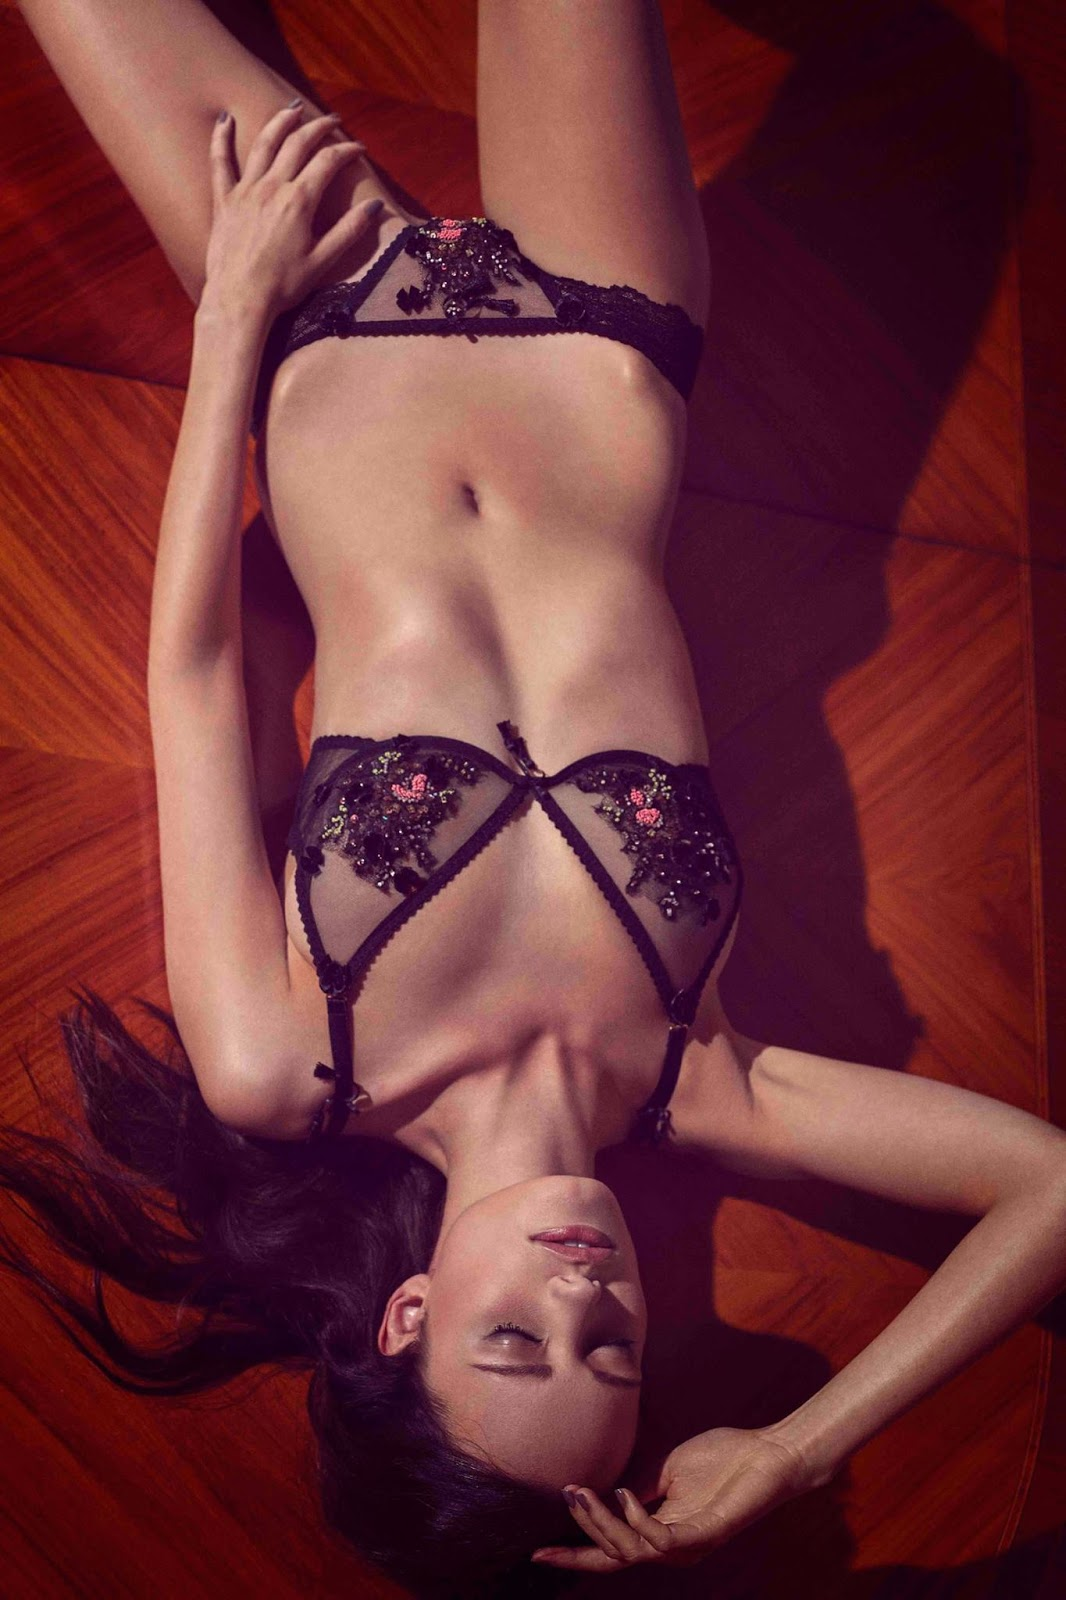 Pretty Wild Lingerie Fall Latest Ad Campaign